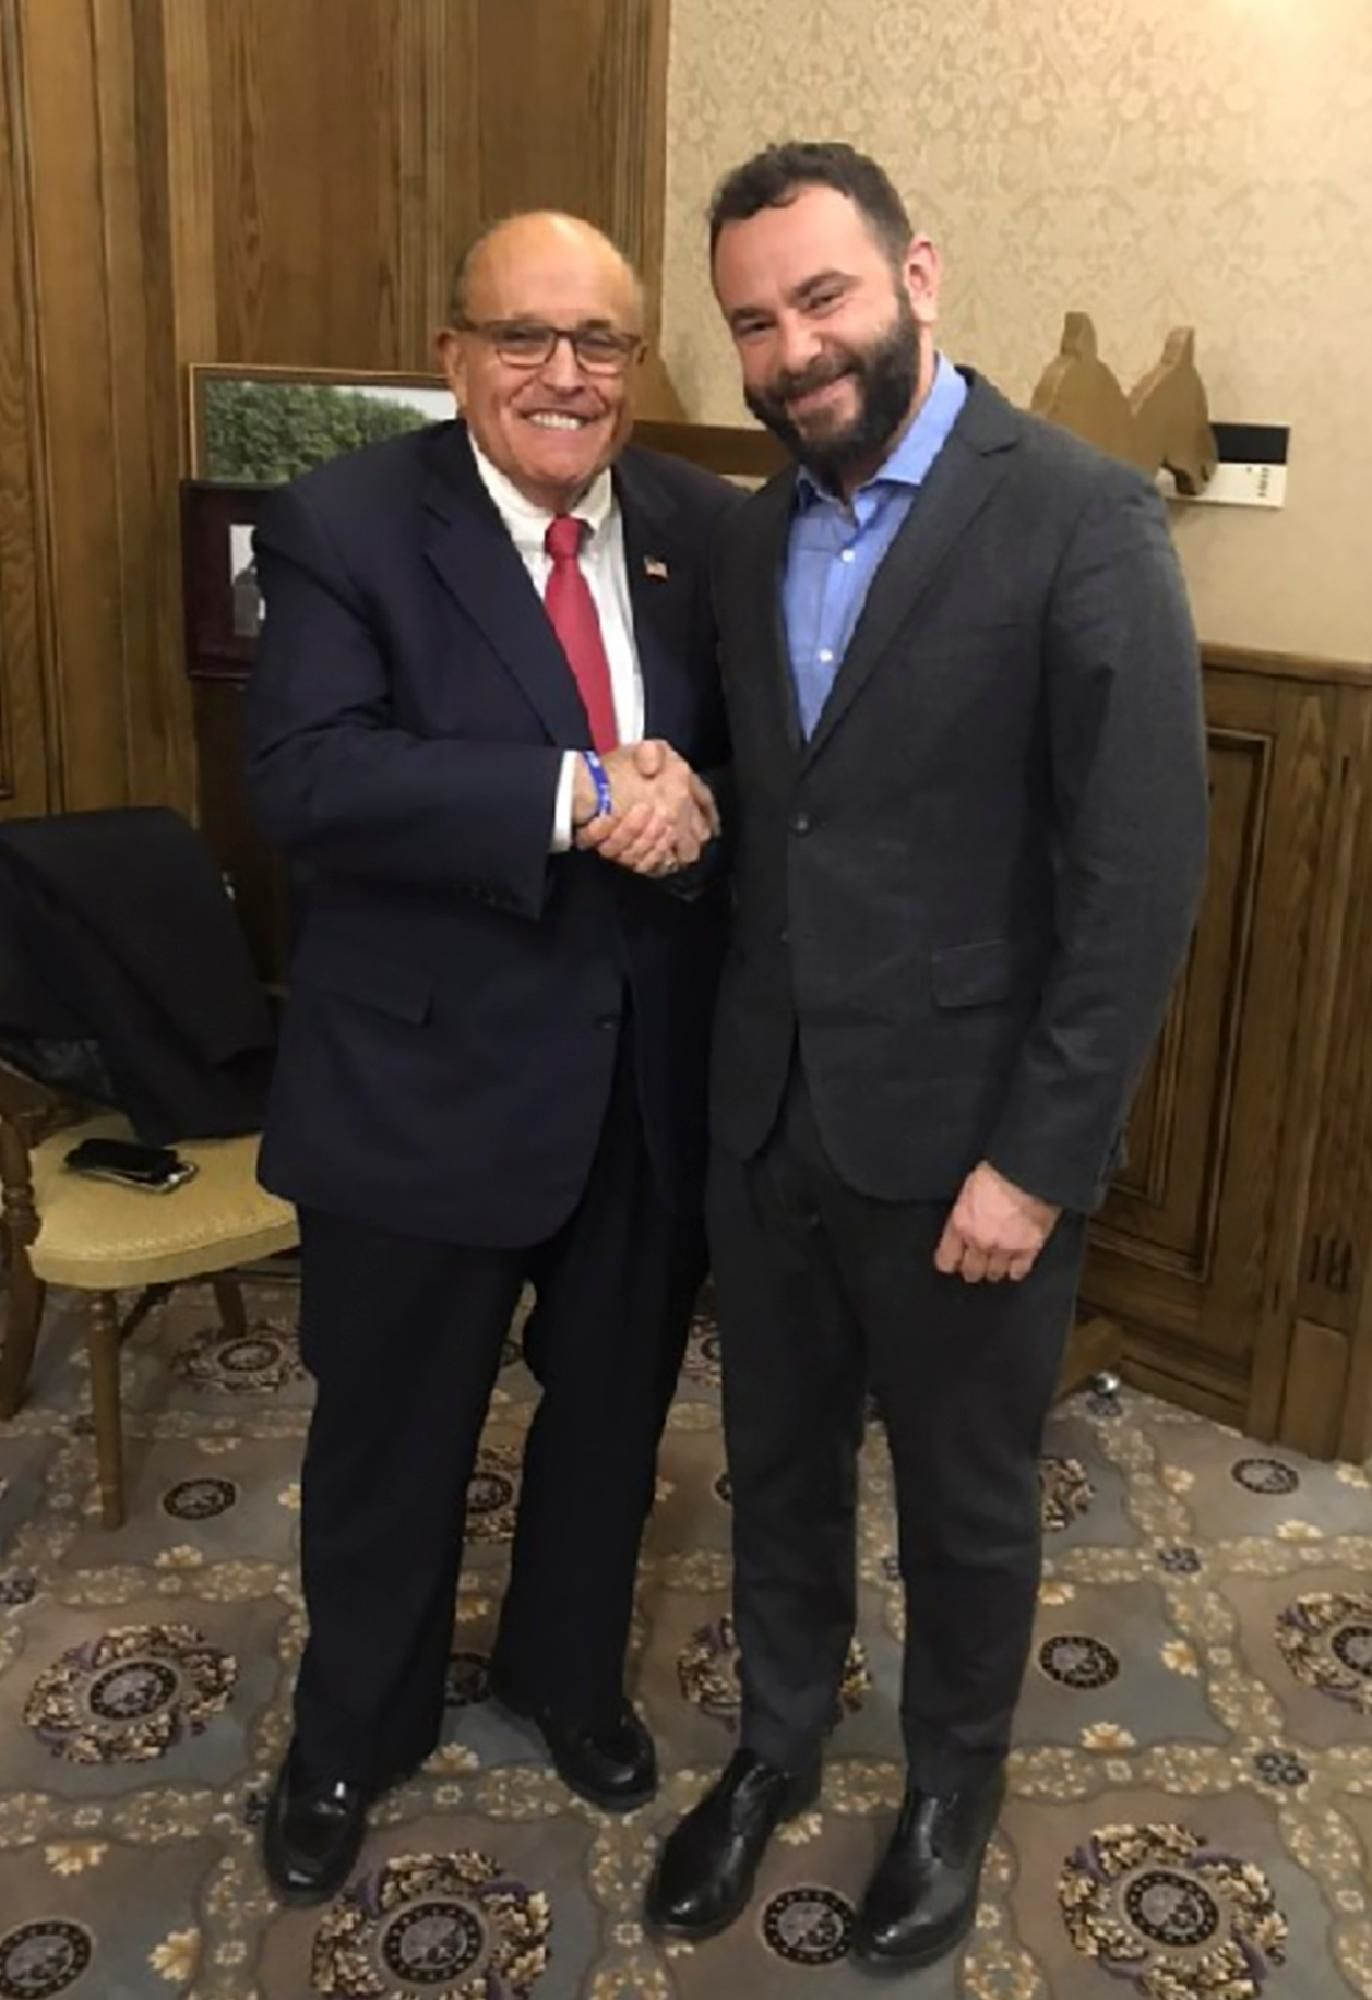 In this handout photo provided by Oleksandr Dubinsky's press office and taken on late Thursday, Dec. 5, 2019, Rudy Giuliani, an attorney for U.S President Donald Trump, left, meets with Ukrainian lawmaker Oleksandr Dubinsky in Kyiv, Ukraine. (Adriii Dubinsky's press office via AP)